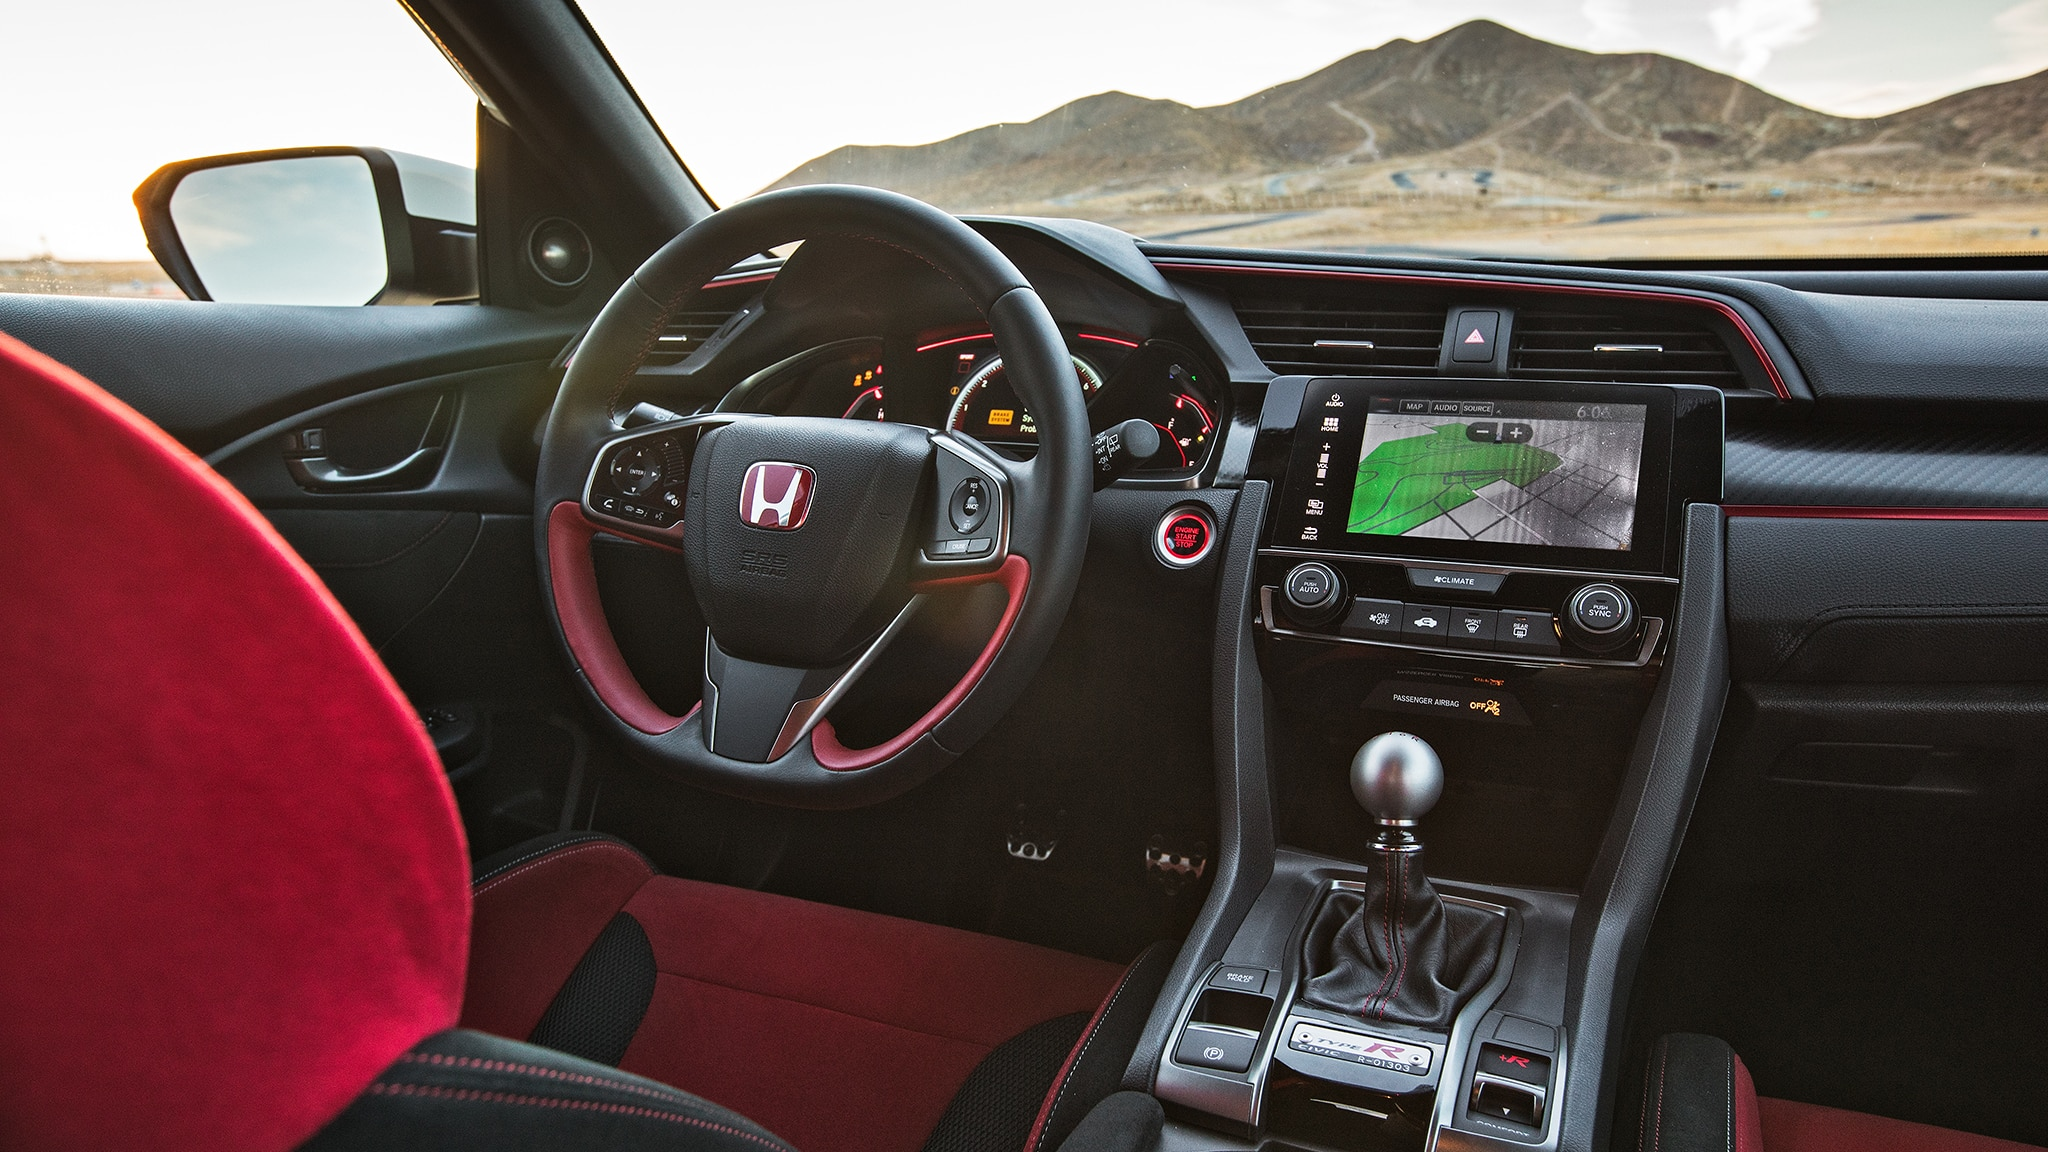 Honda Civic Type R Long-Term Wrap: One Year of Absolute